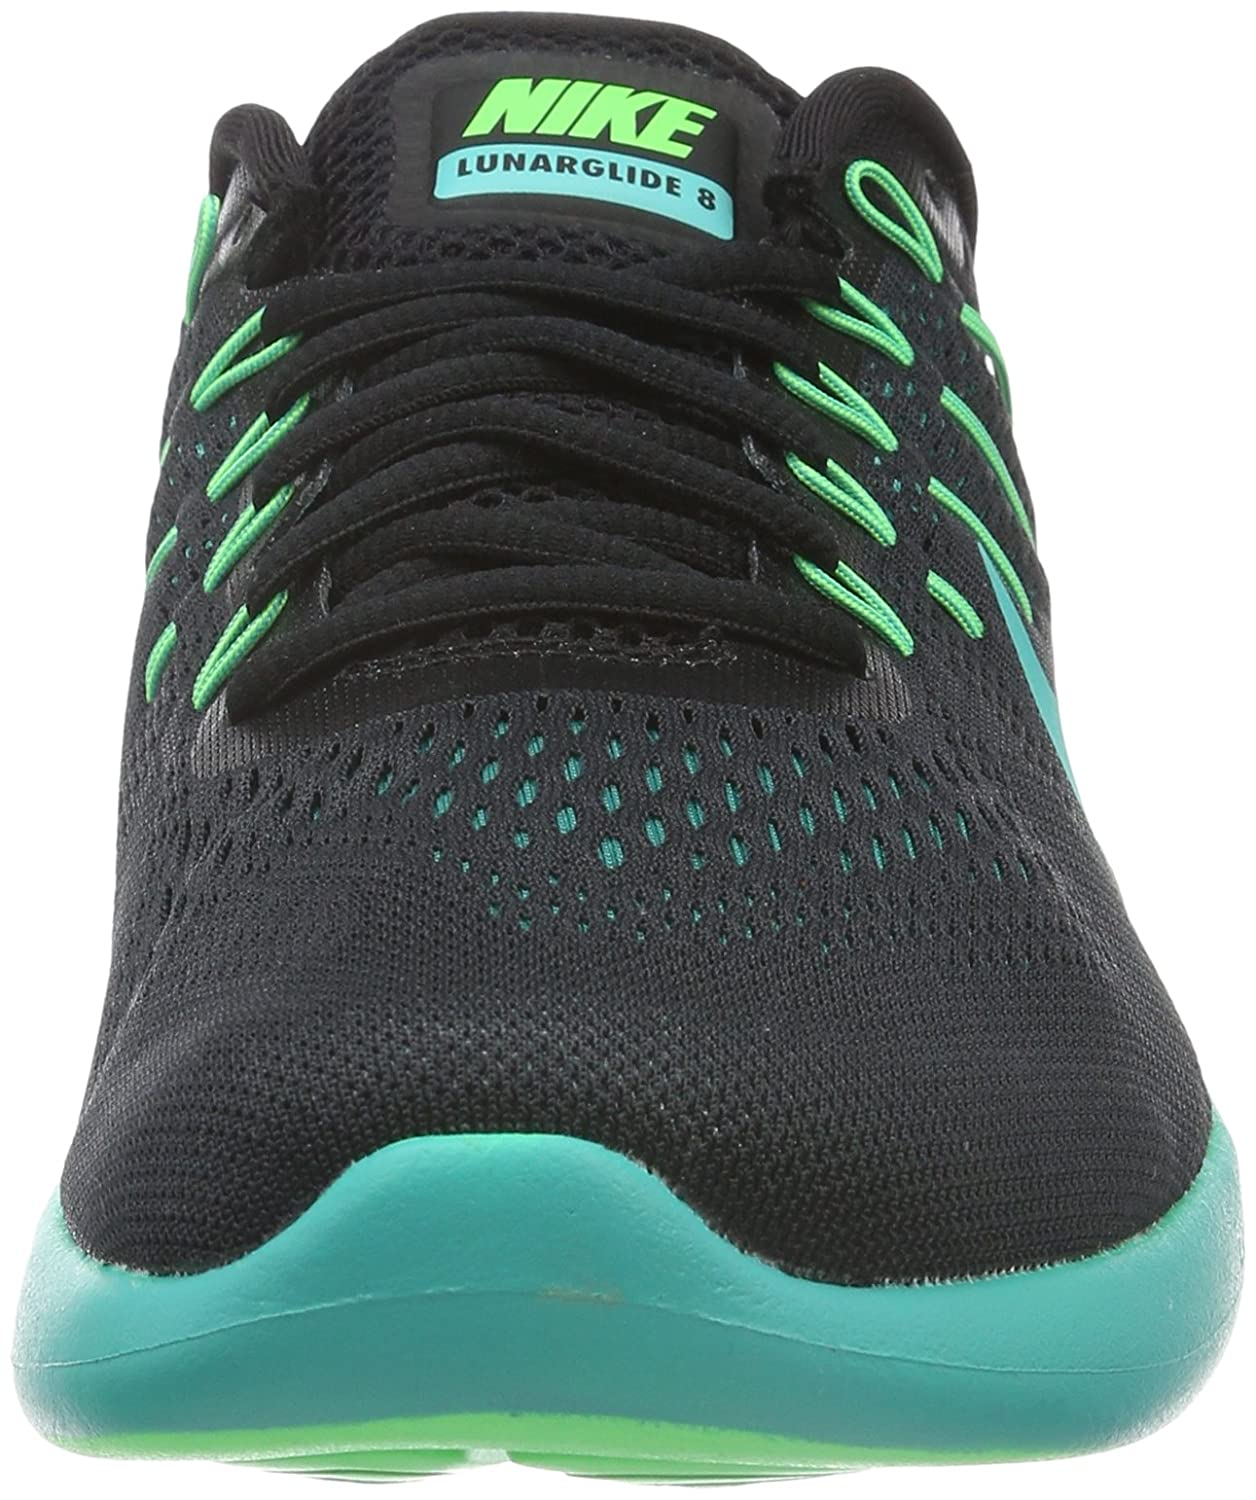 64a9cdb4a094 ... purchase nike lunarglide 8 mens training running shoes black black multi  color rio teal clear jade